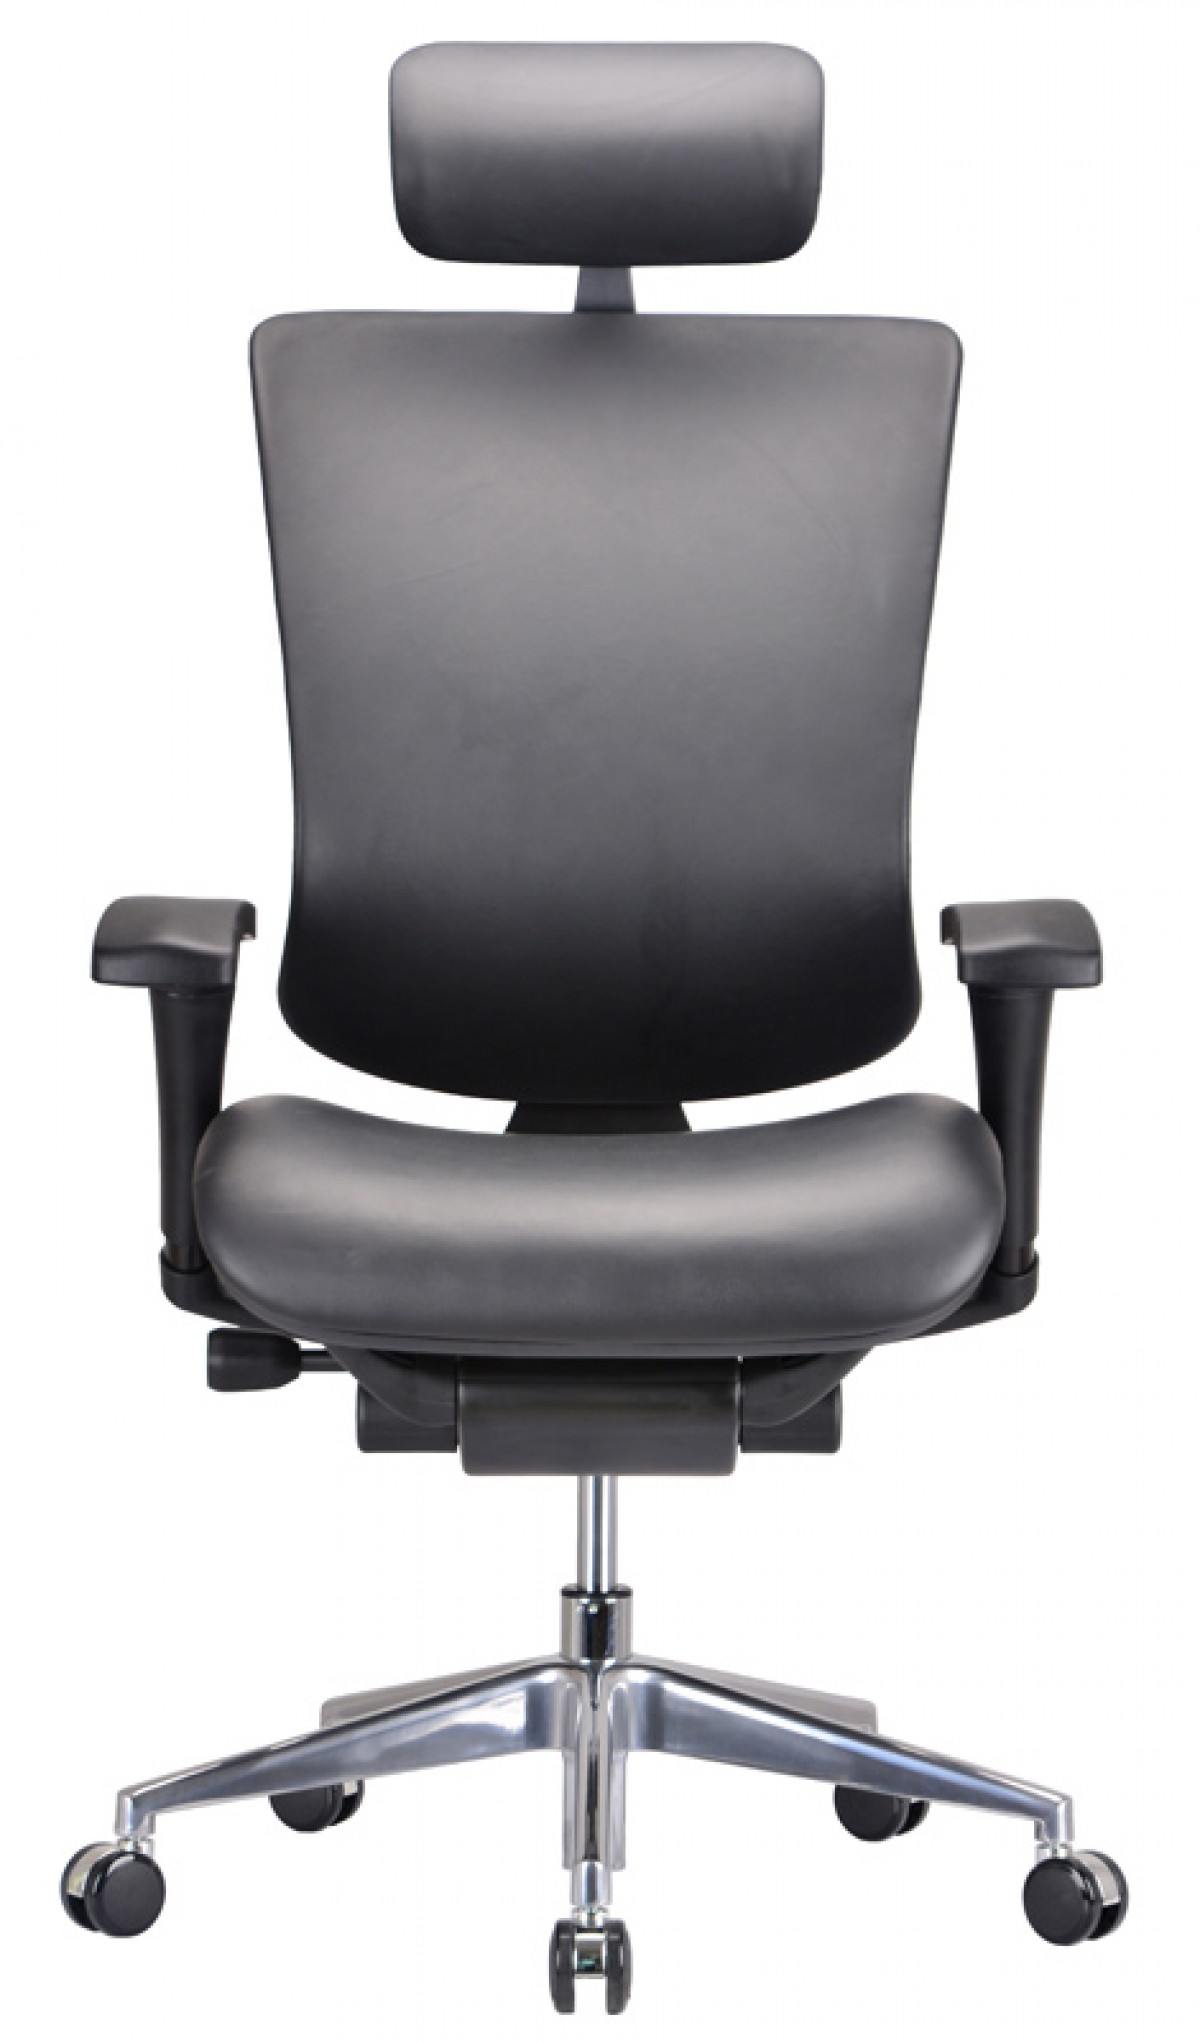 Modrest watson modern black leather office chair for Modern leather office chairs